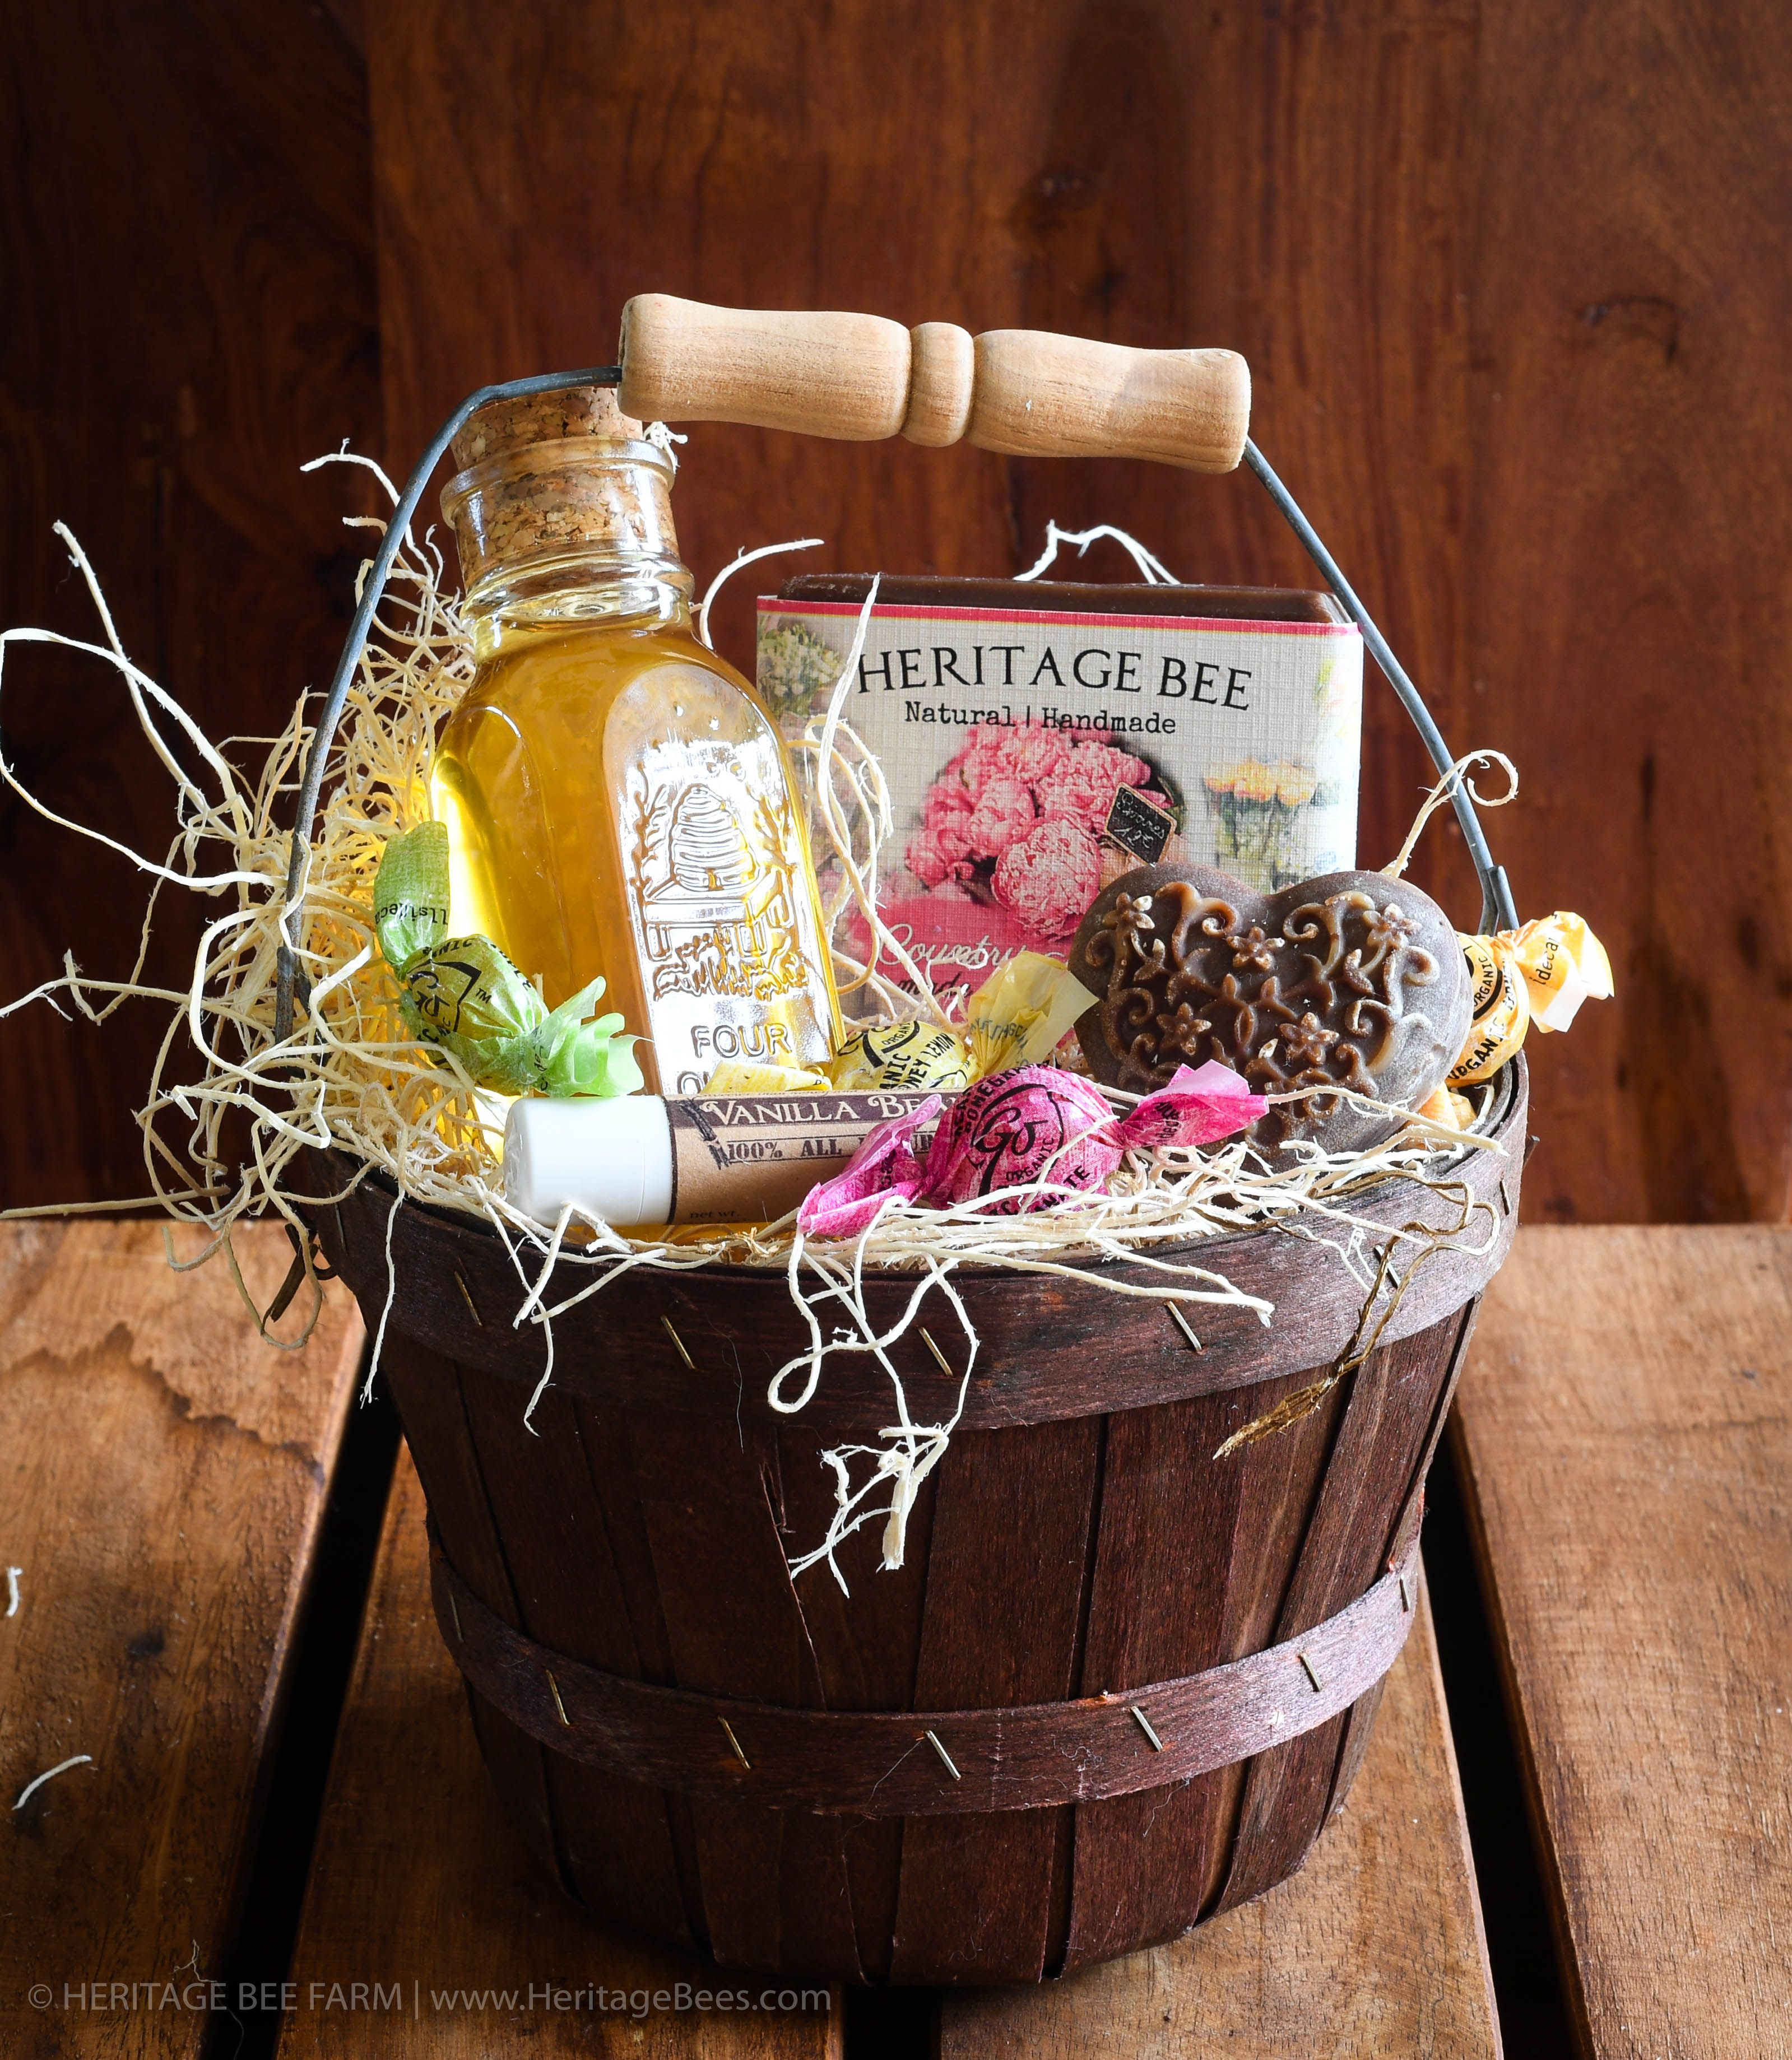 Classic Gourmet Gift Baskets from our Bee Farm to your Home! Unique ...